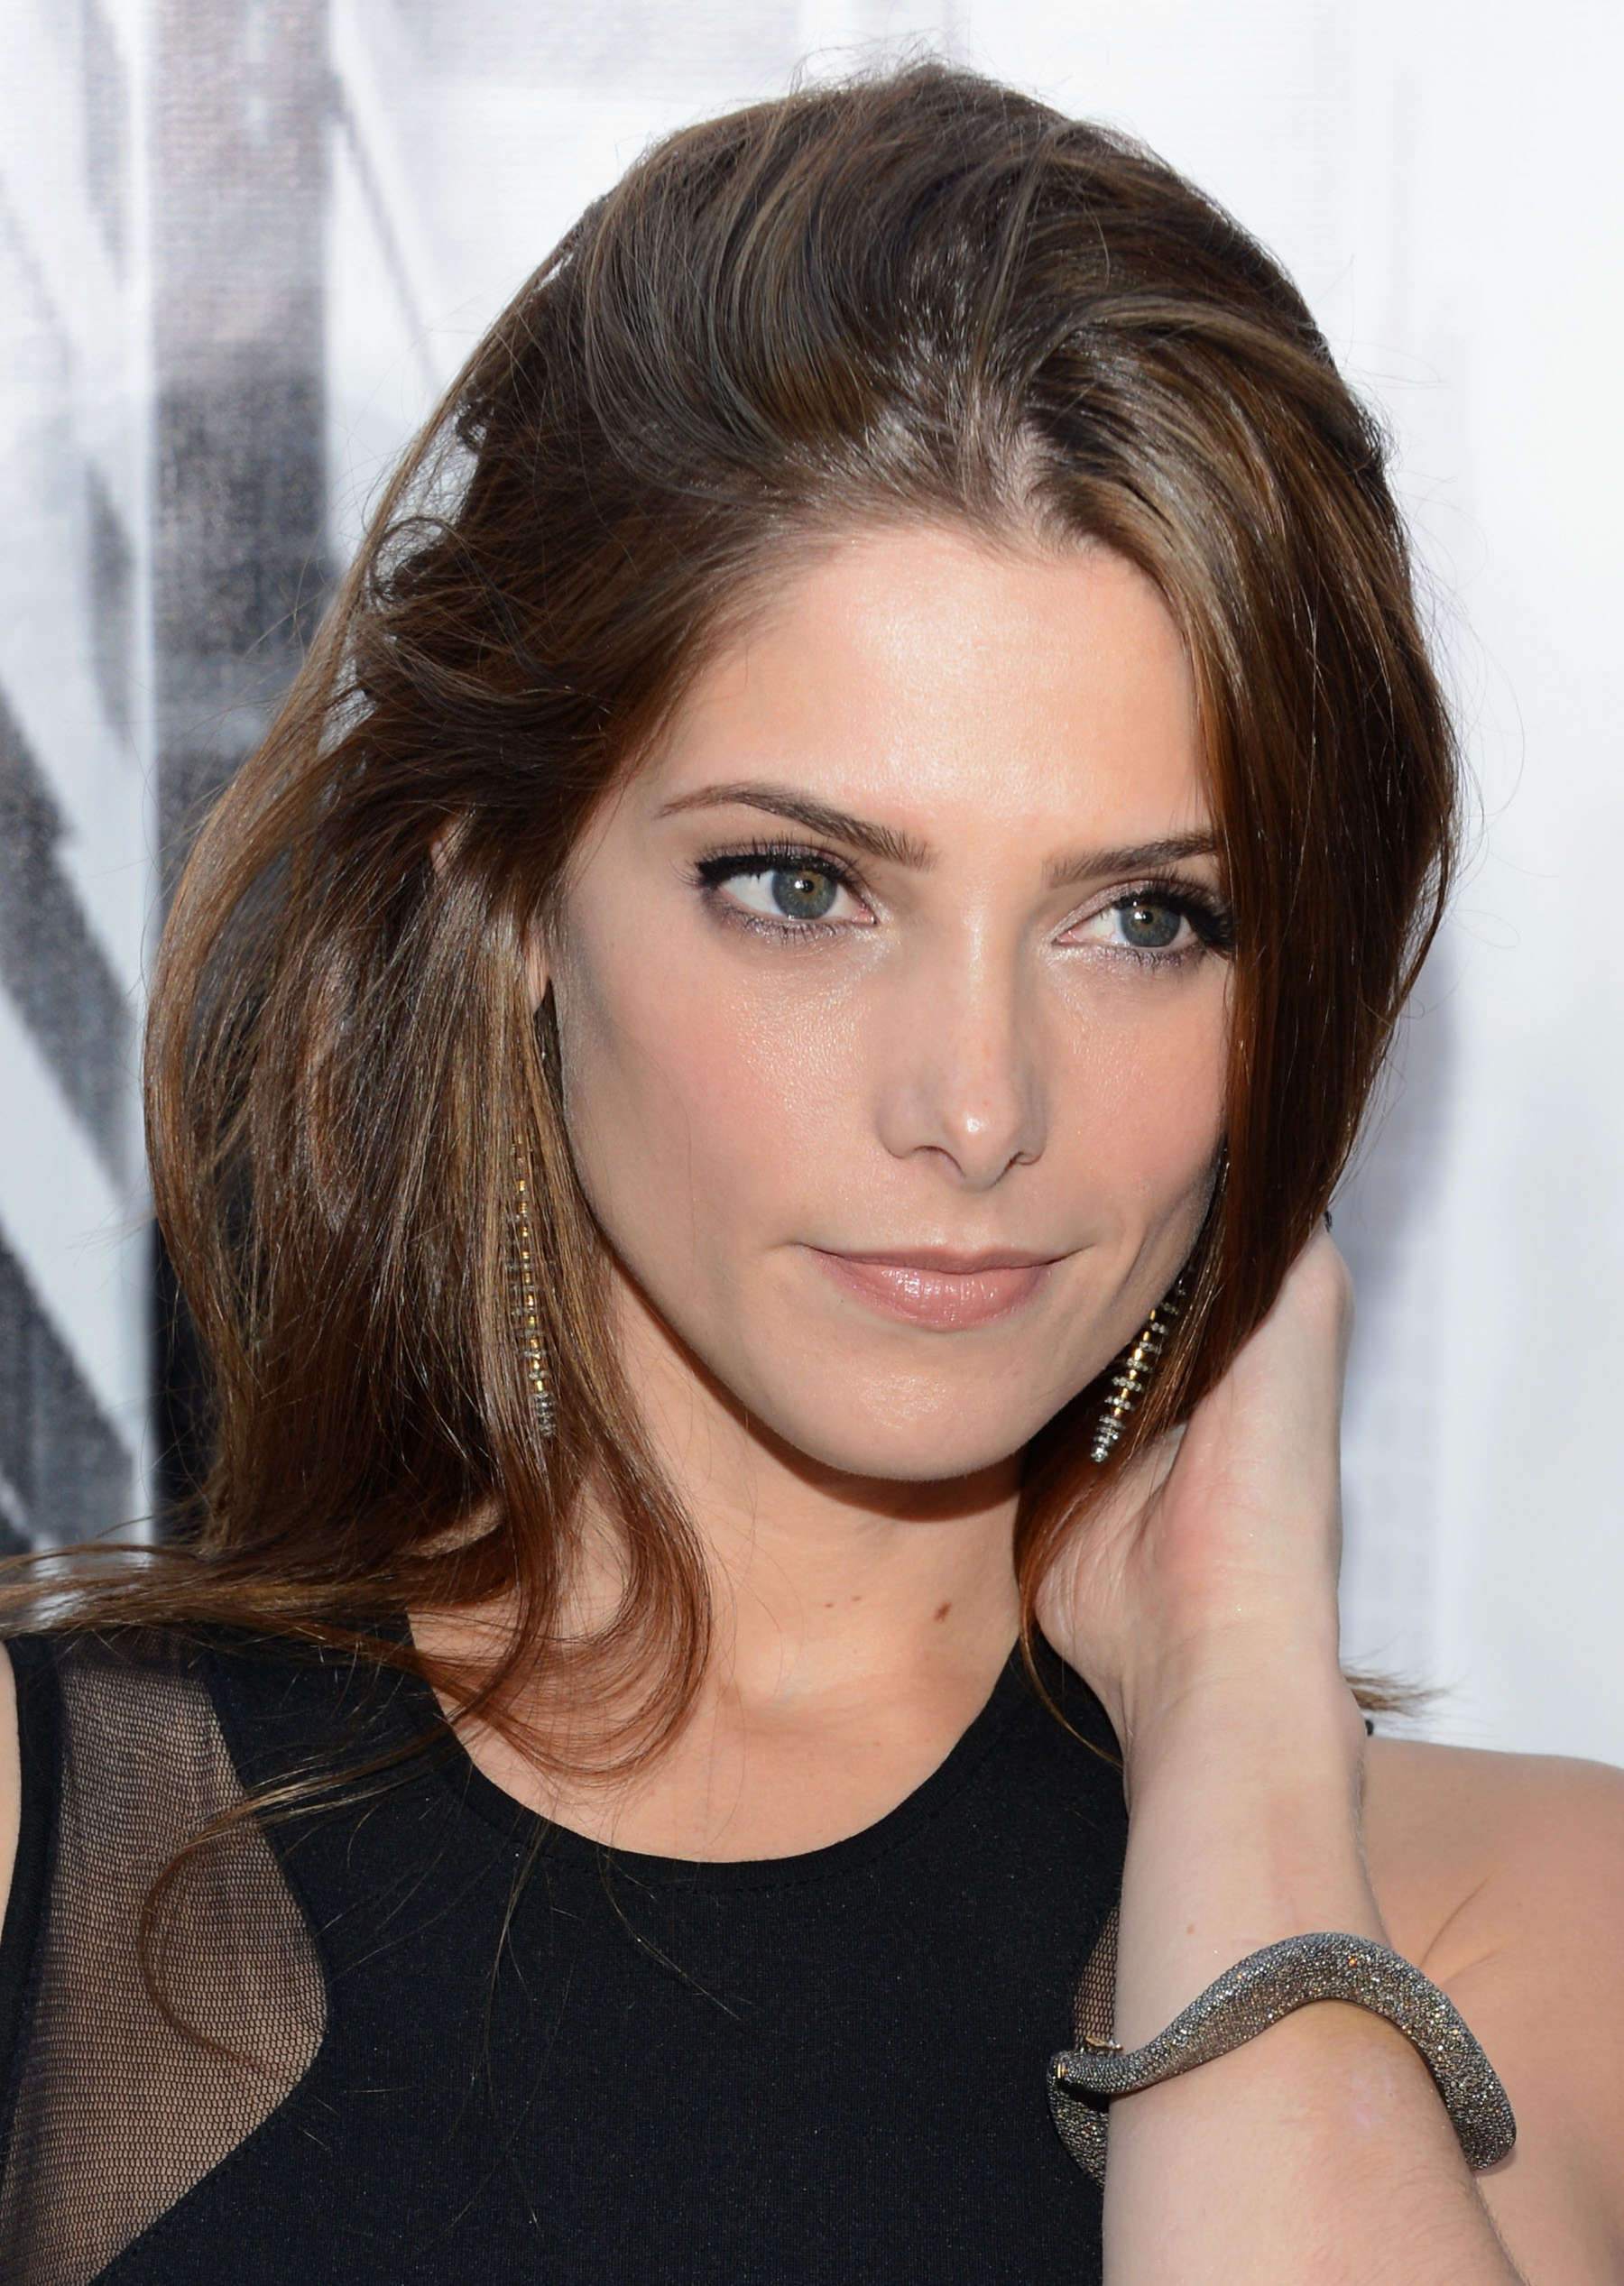 Ashley Greene at DKNY fashion show-07 | GotCeleb